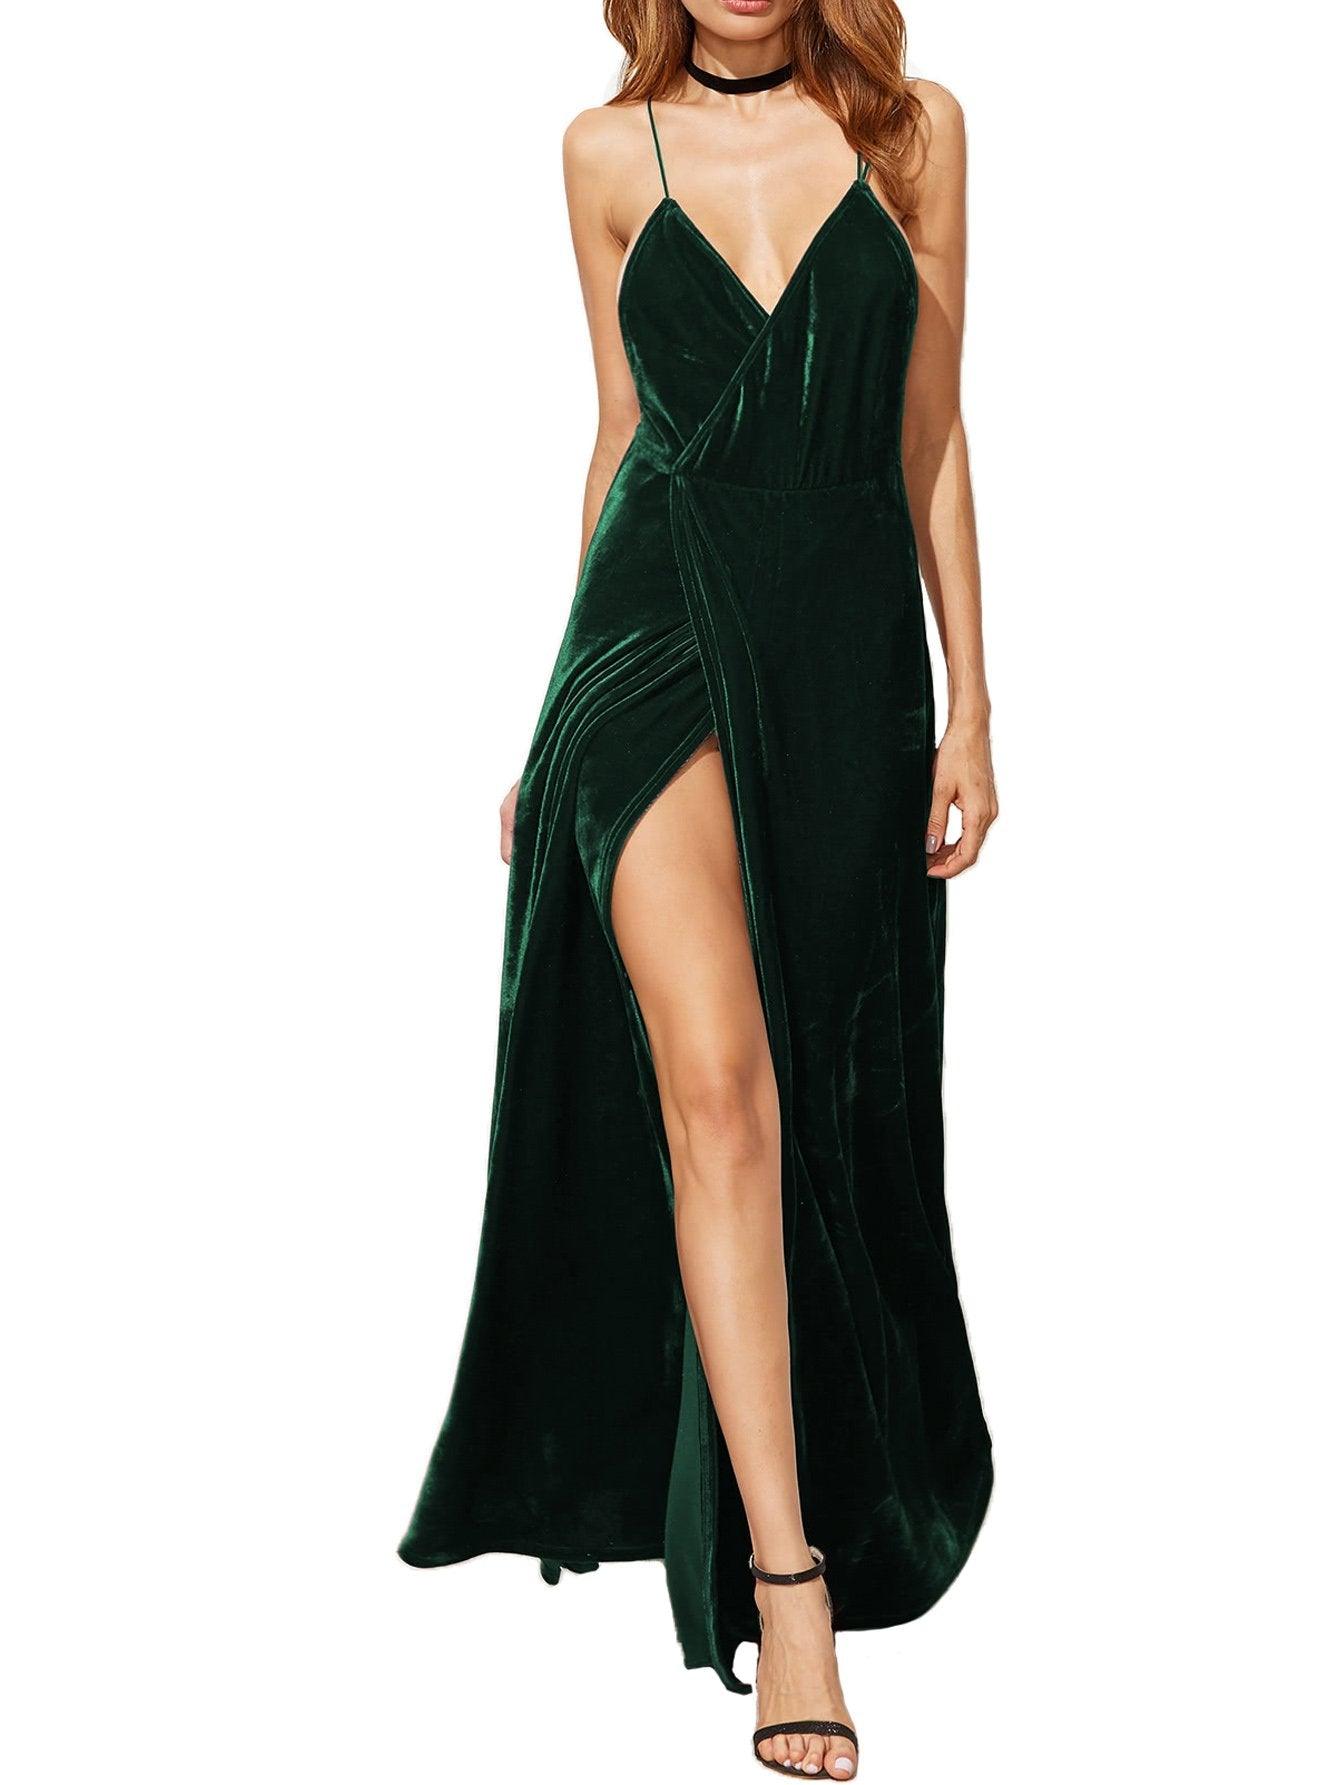 Verdusa Women's V-Neck Backless Wrap Velvet Cocktai Party Dress Green M - wiihuu